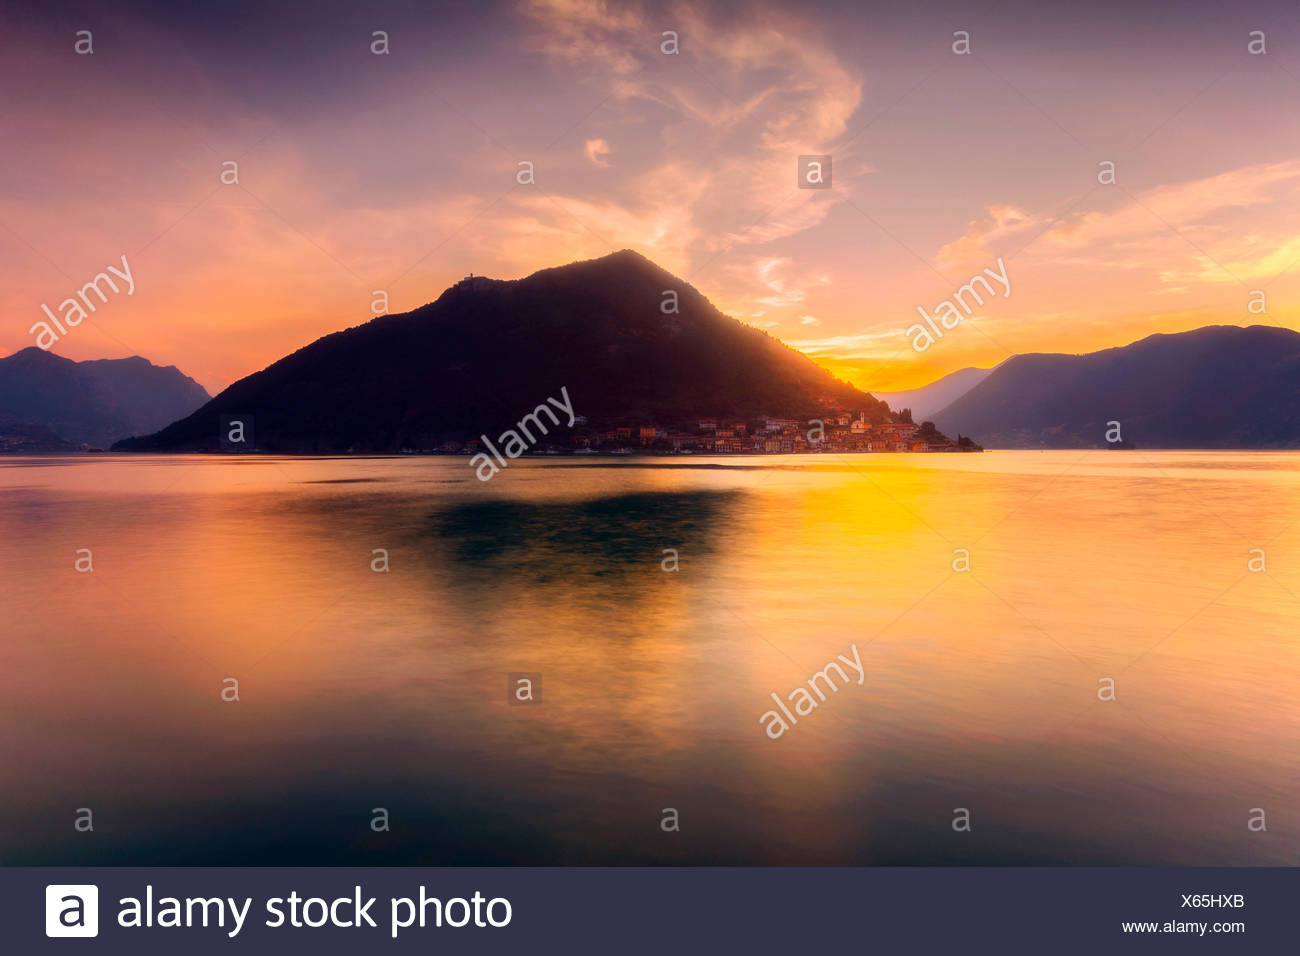 Monte Isola , Lake Iseo , province of Brescia , Italy - Stock Image